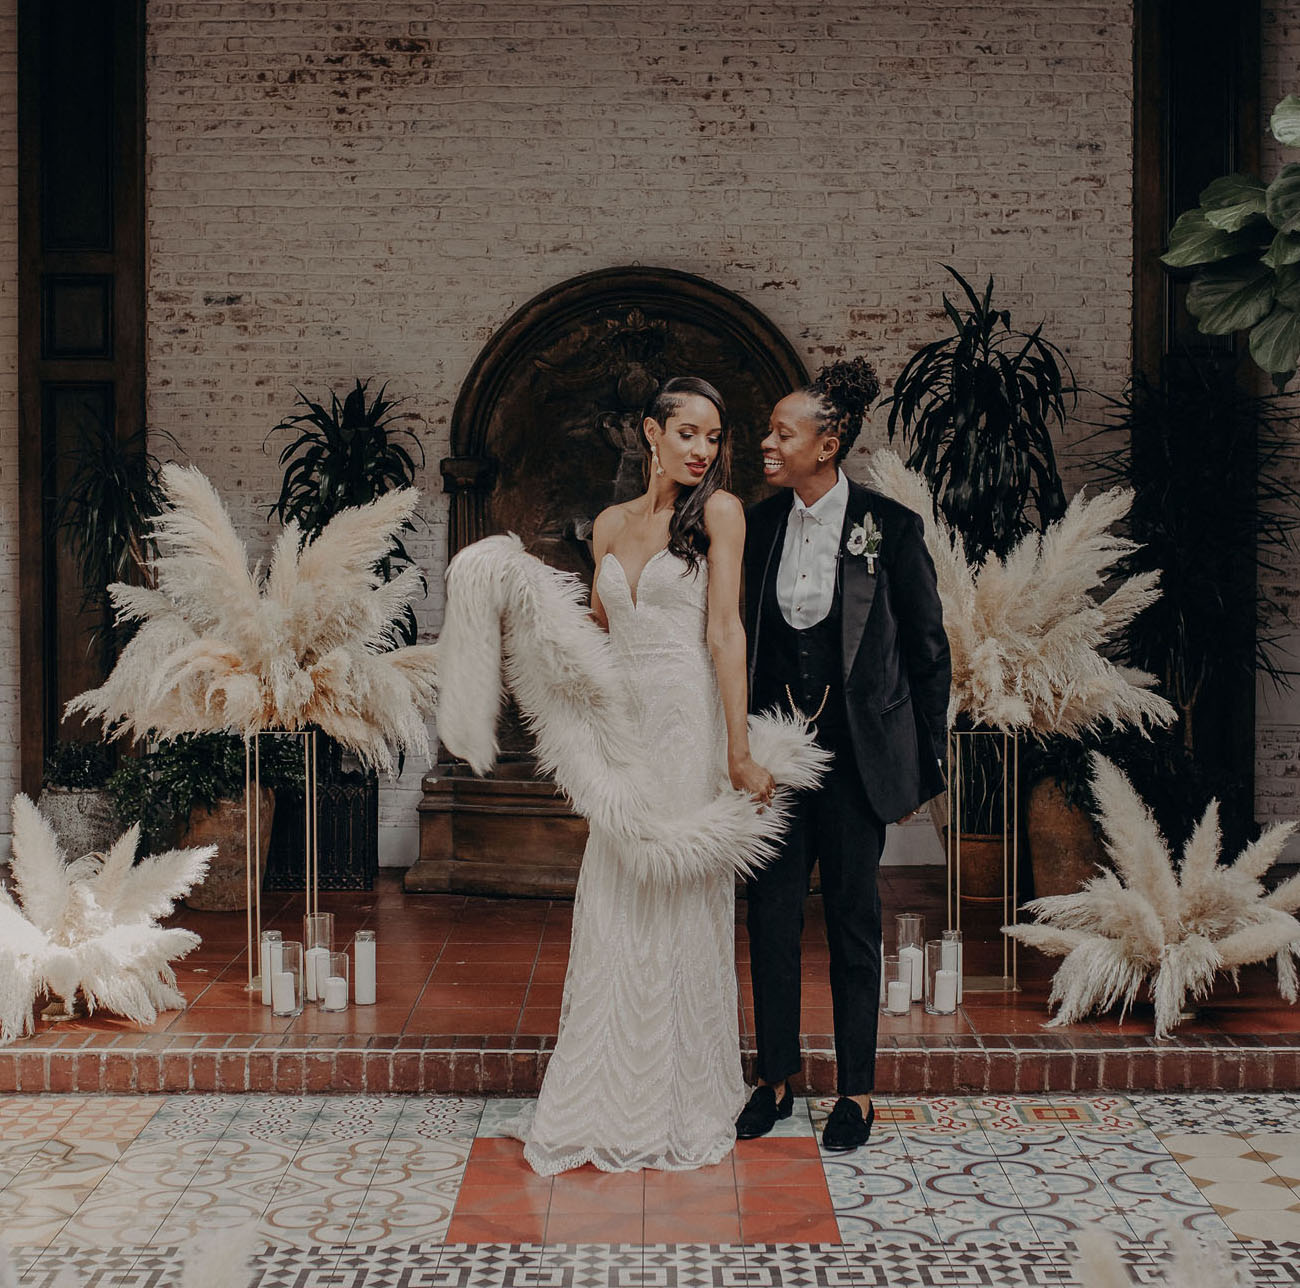 1920s Vintage Wedding Ideas: 1920s-Inspired Glamour Meets California Cool At This